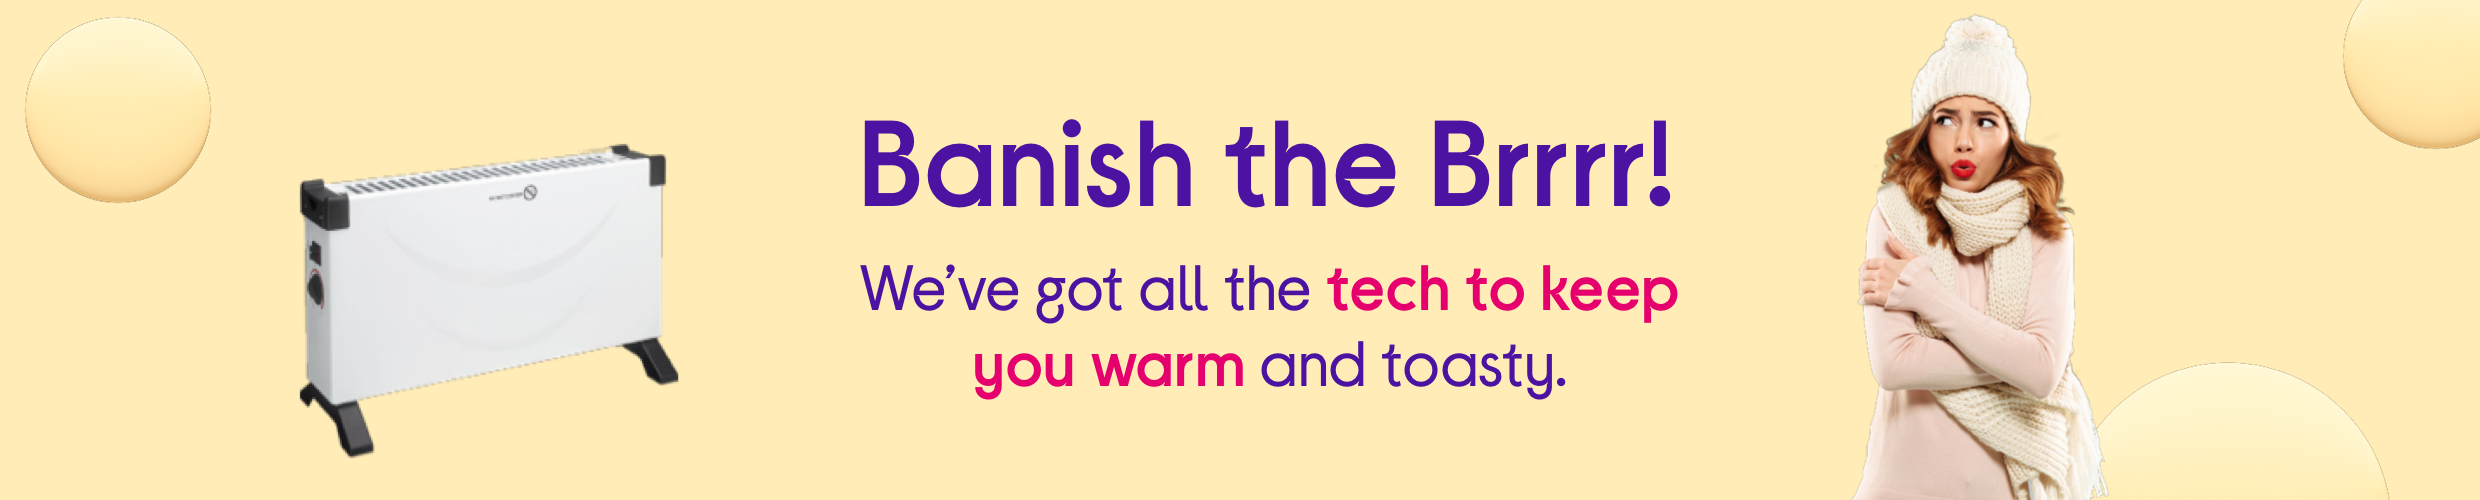 Banish the brrr with our winter tech